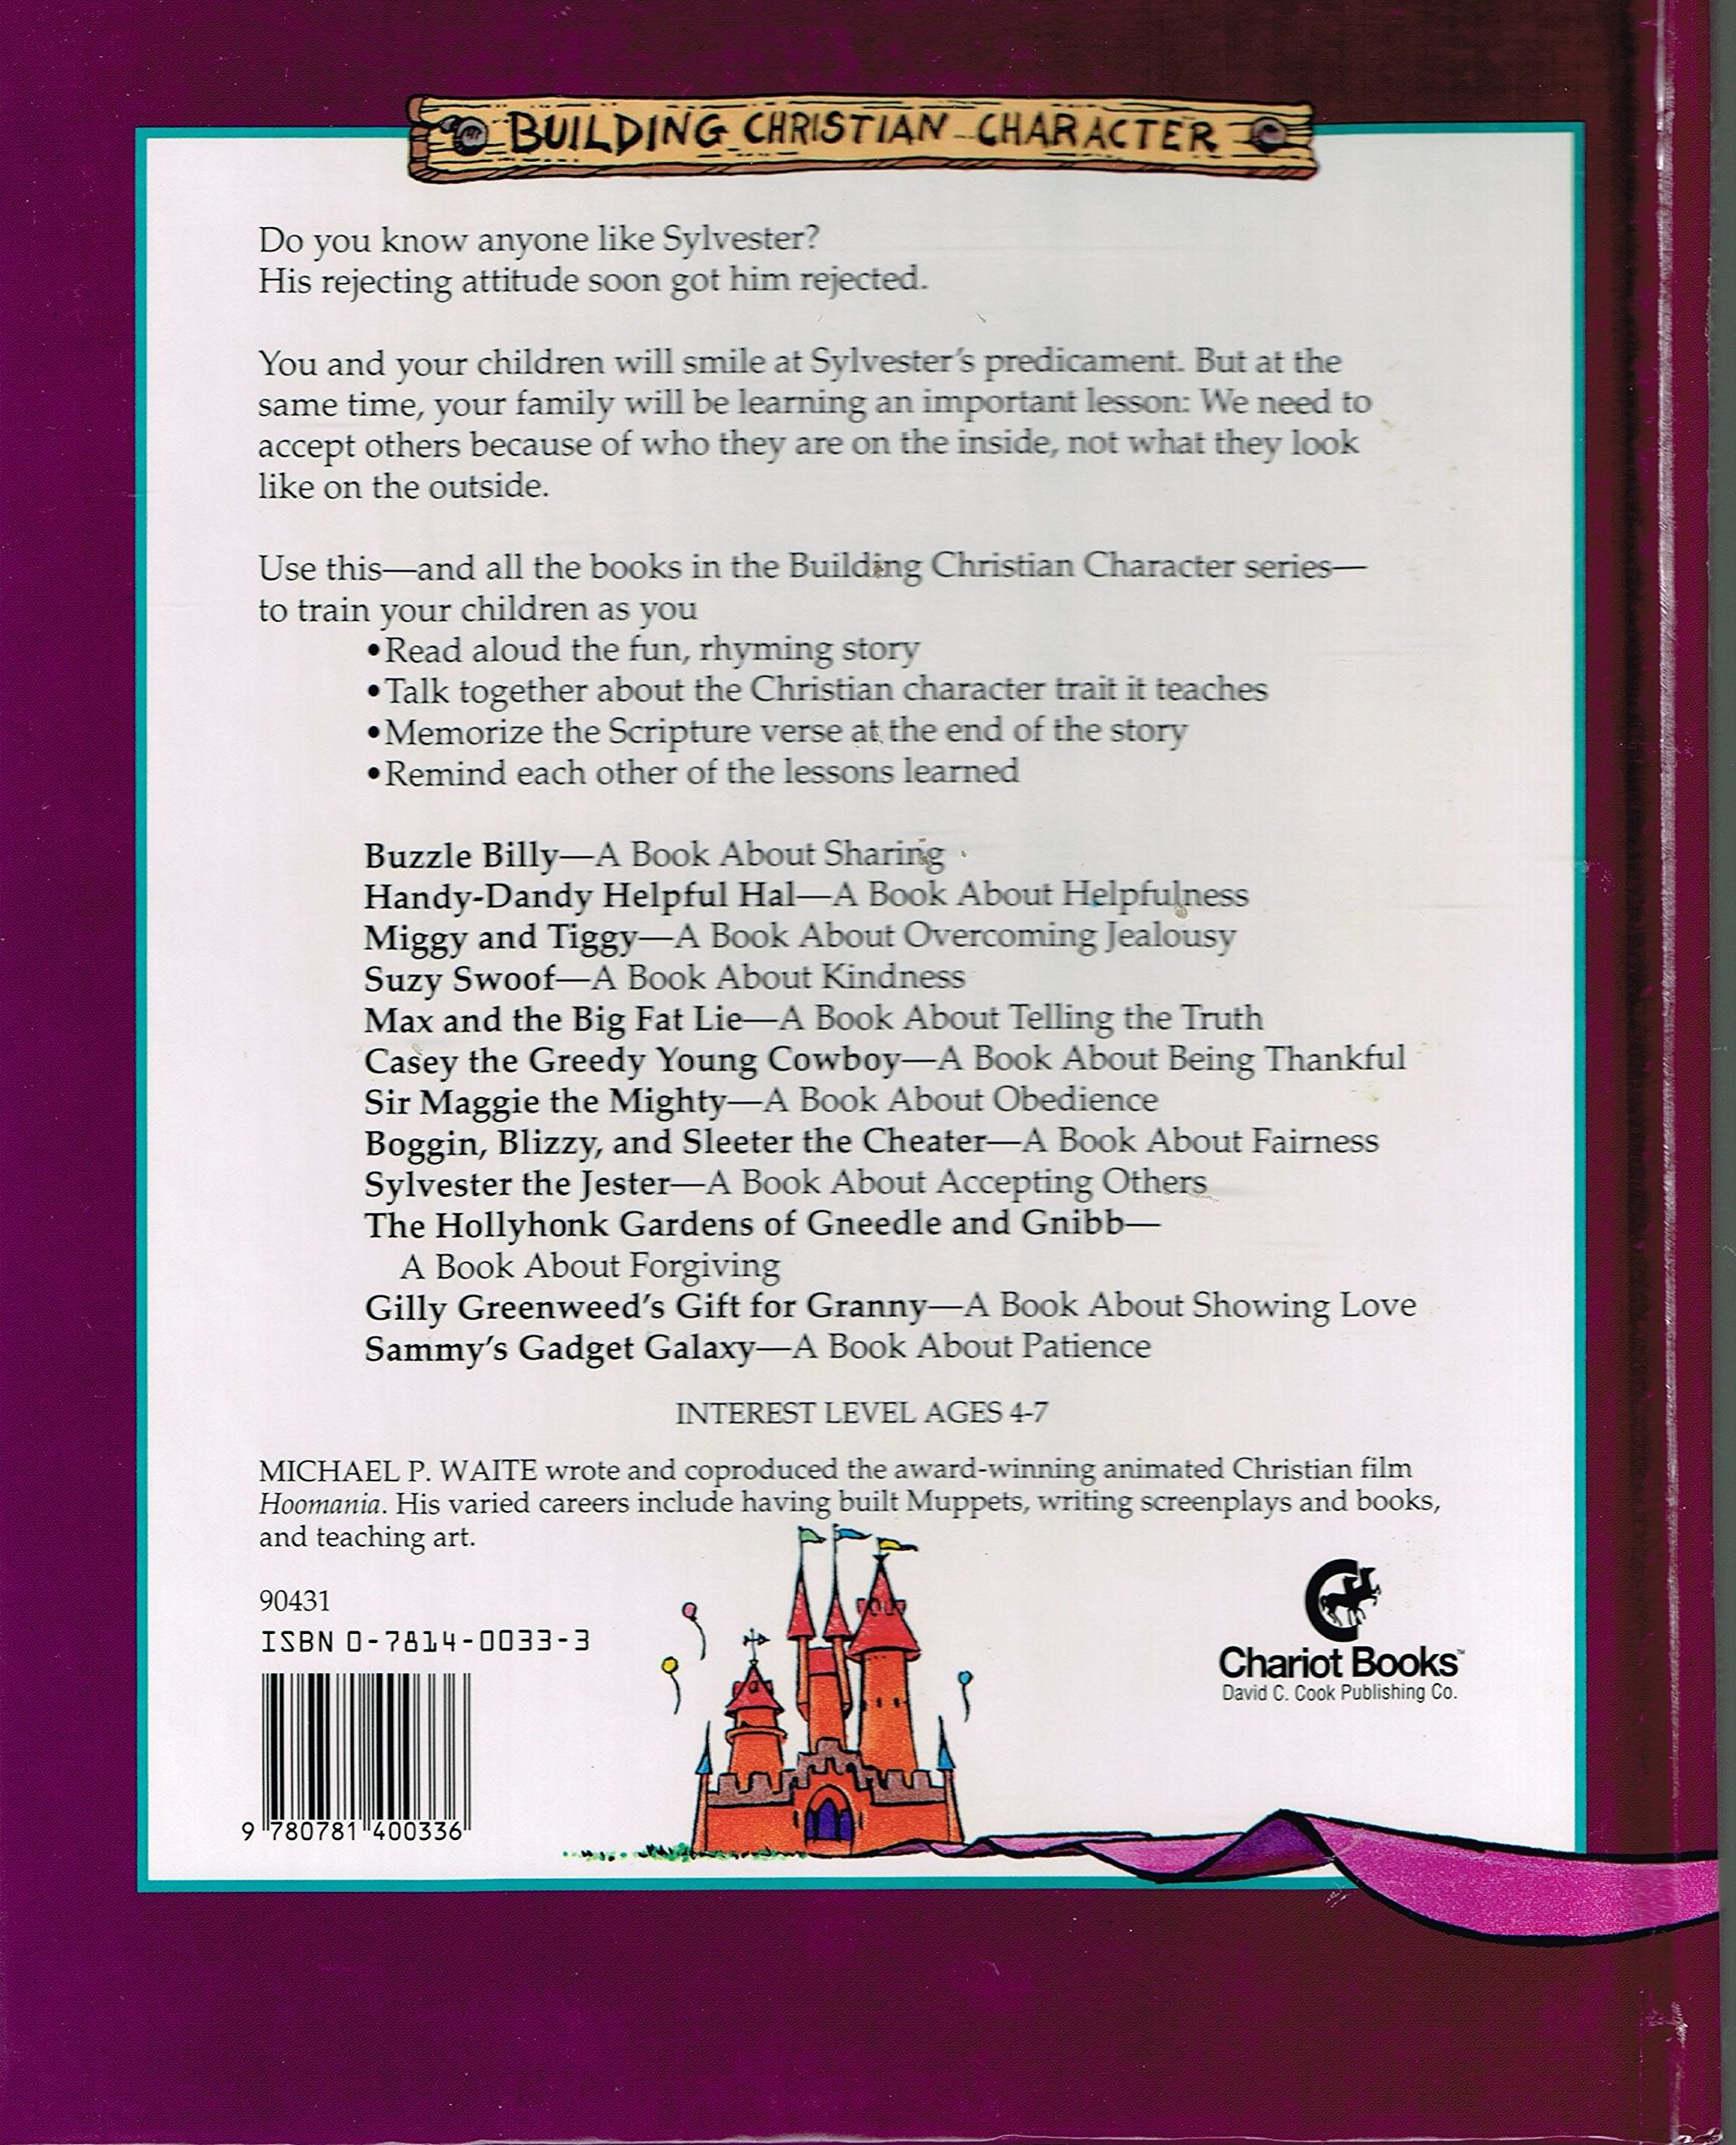 sylvester the jester a book about accepting others building